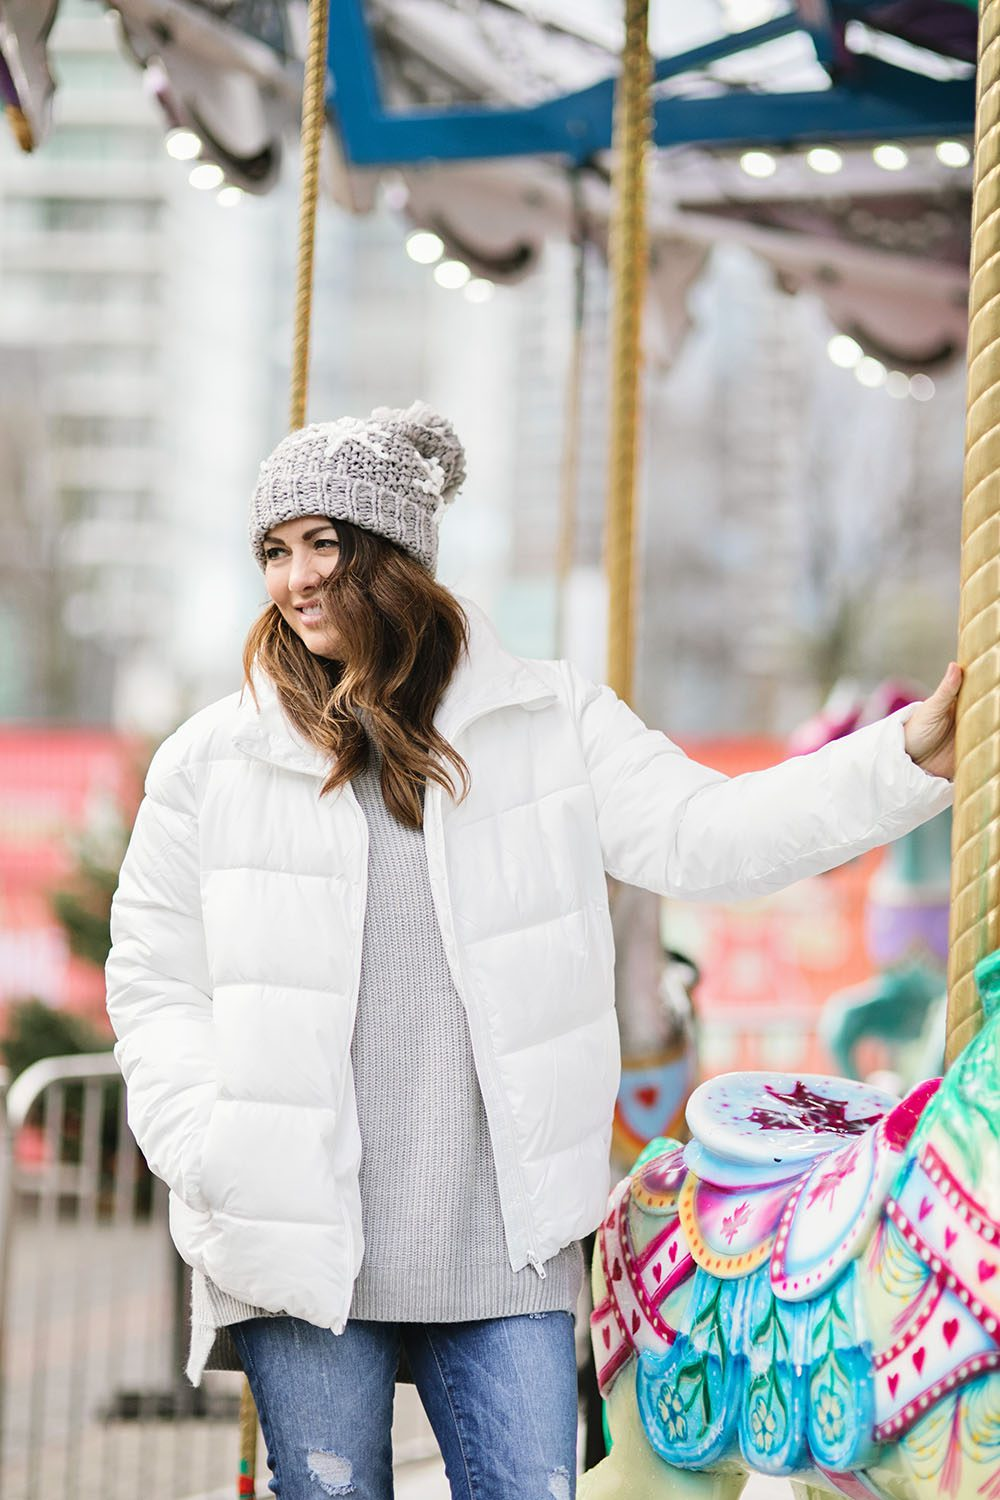 blog-jillianharris30nov2016-673